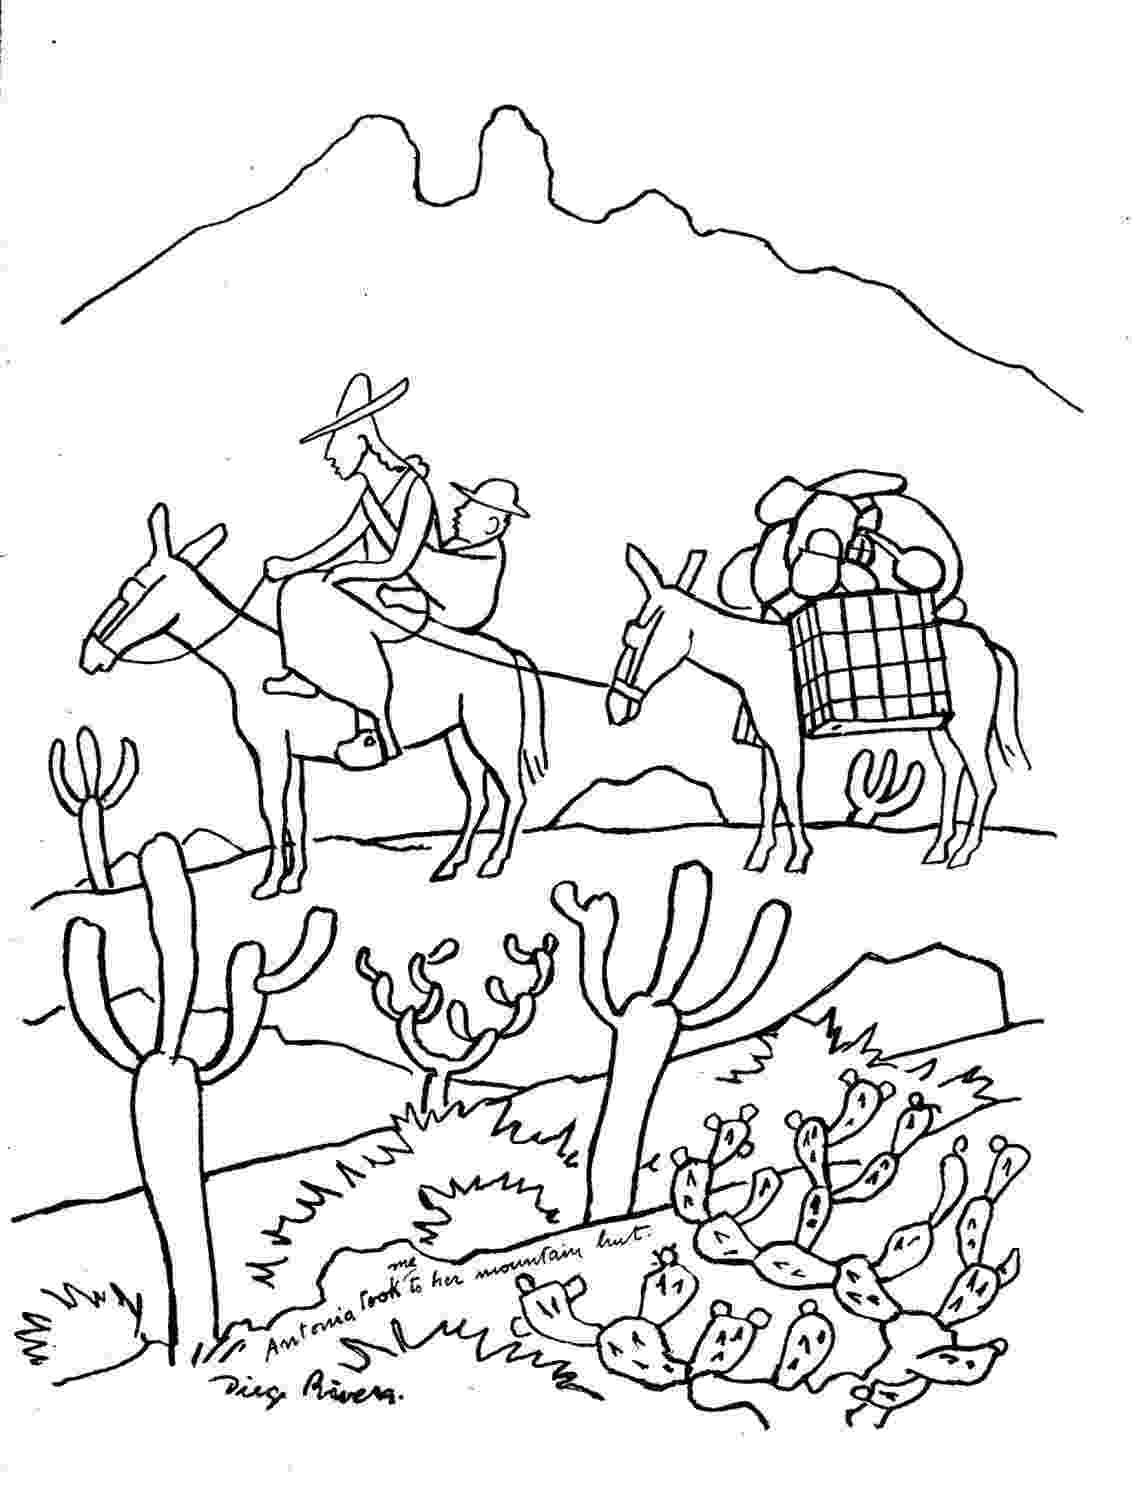 diego rivera coloring pages diego rivera sheets coloring pages coloring diego rivera pages